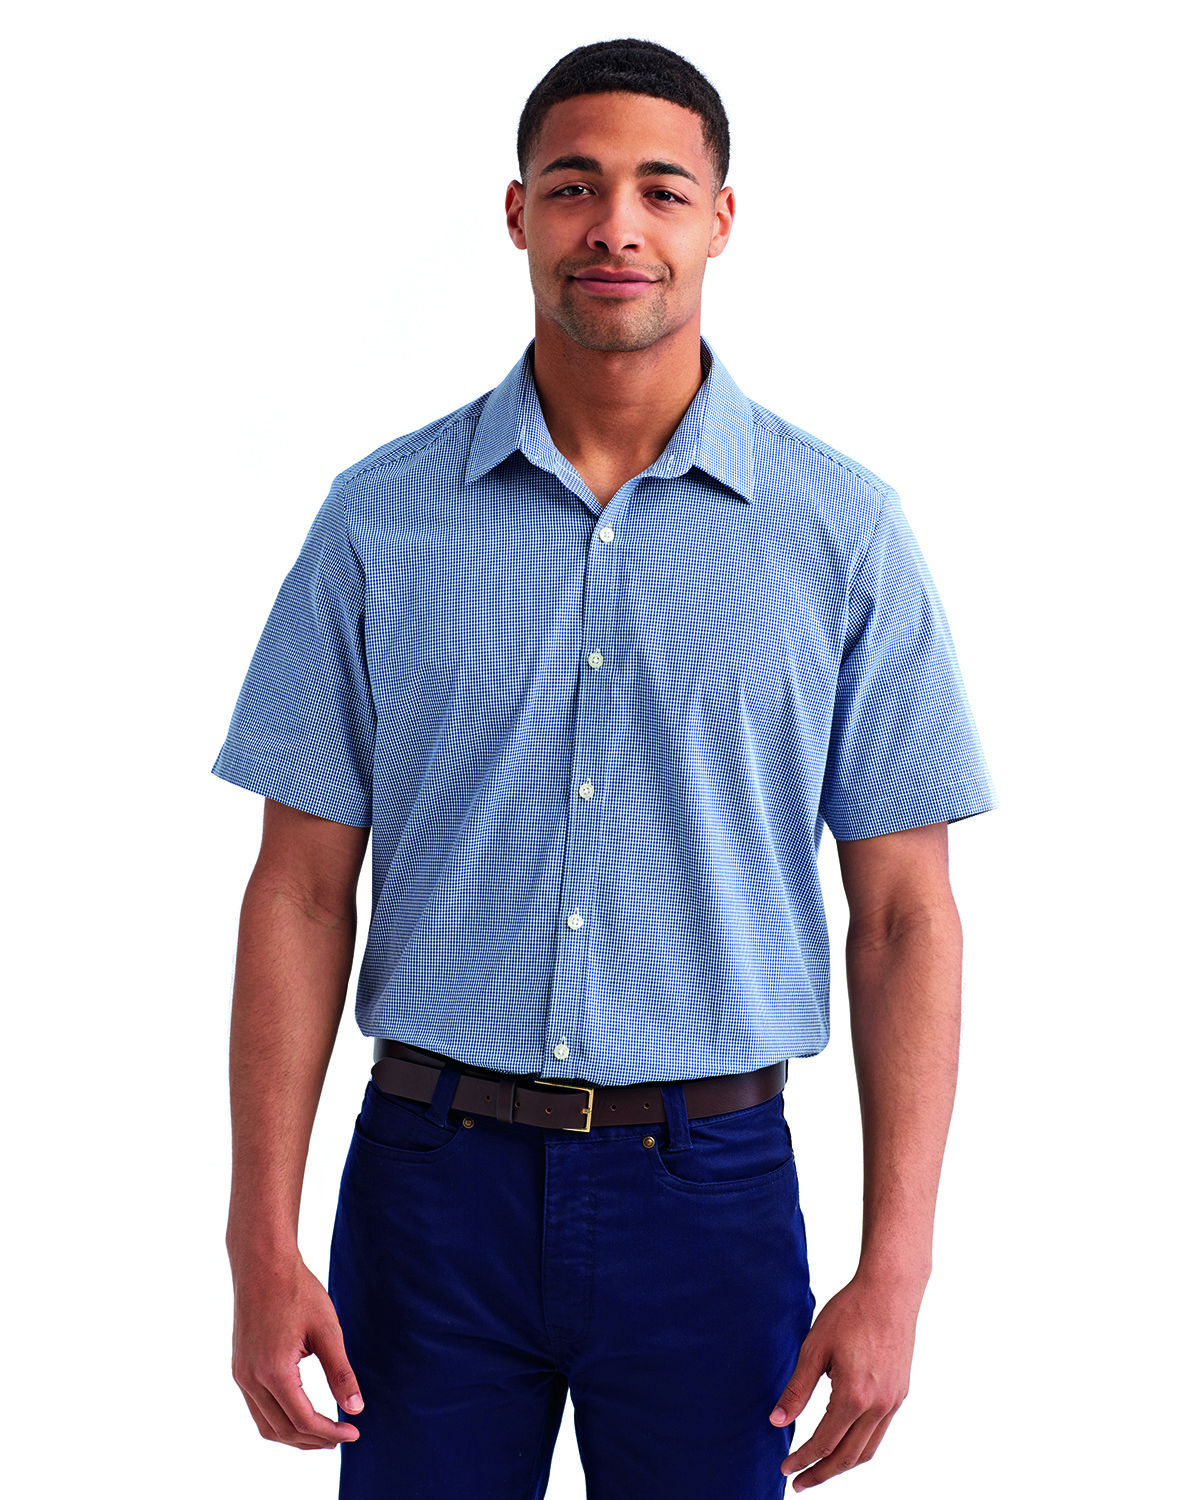 Artisan Collection by Reprime Mens Microcheck Gingham Short-Sleeve Cotton Shirt NAVY/ WHITE